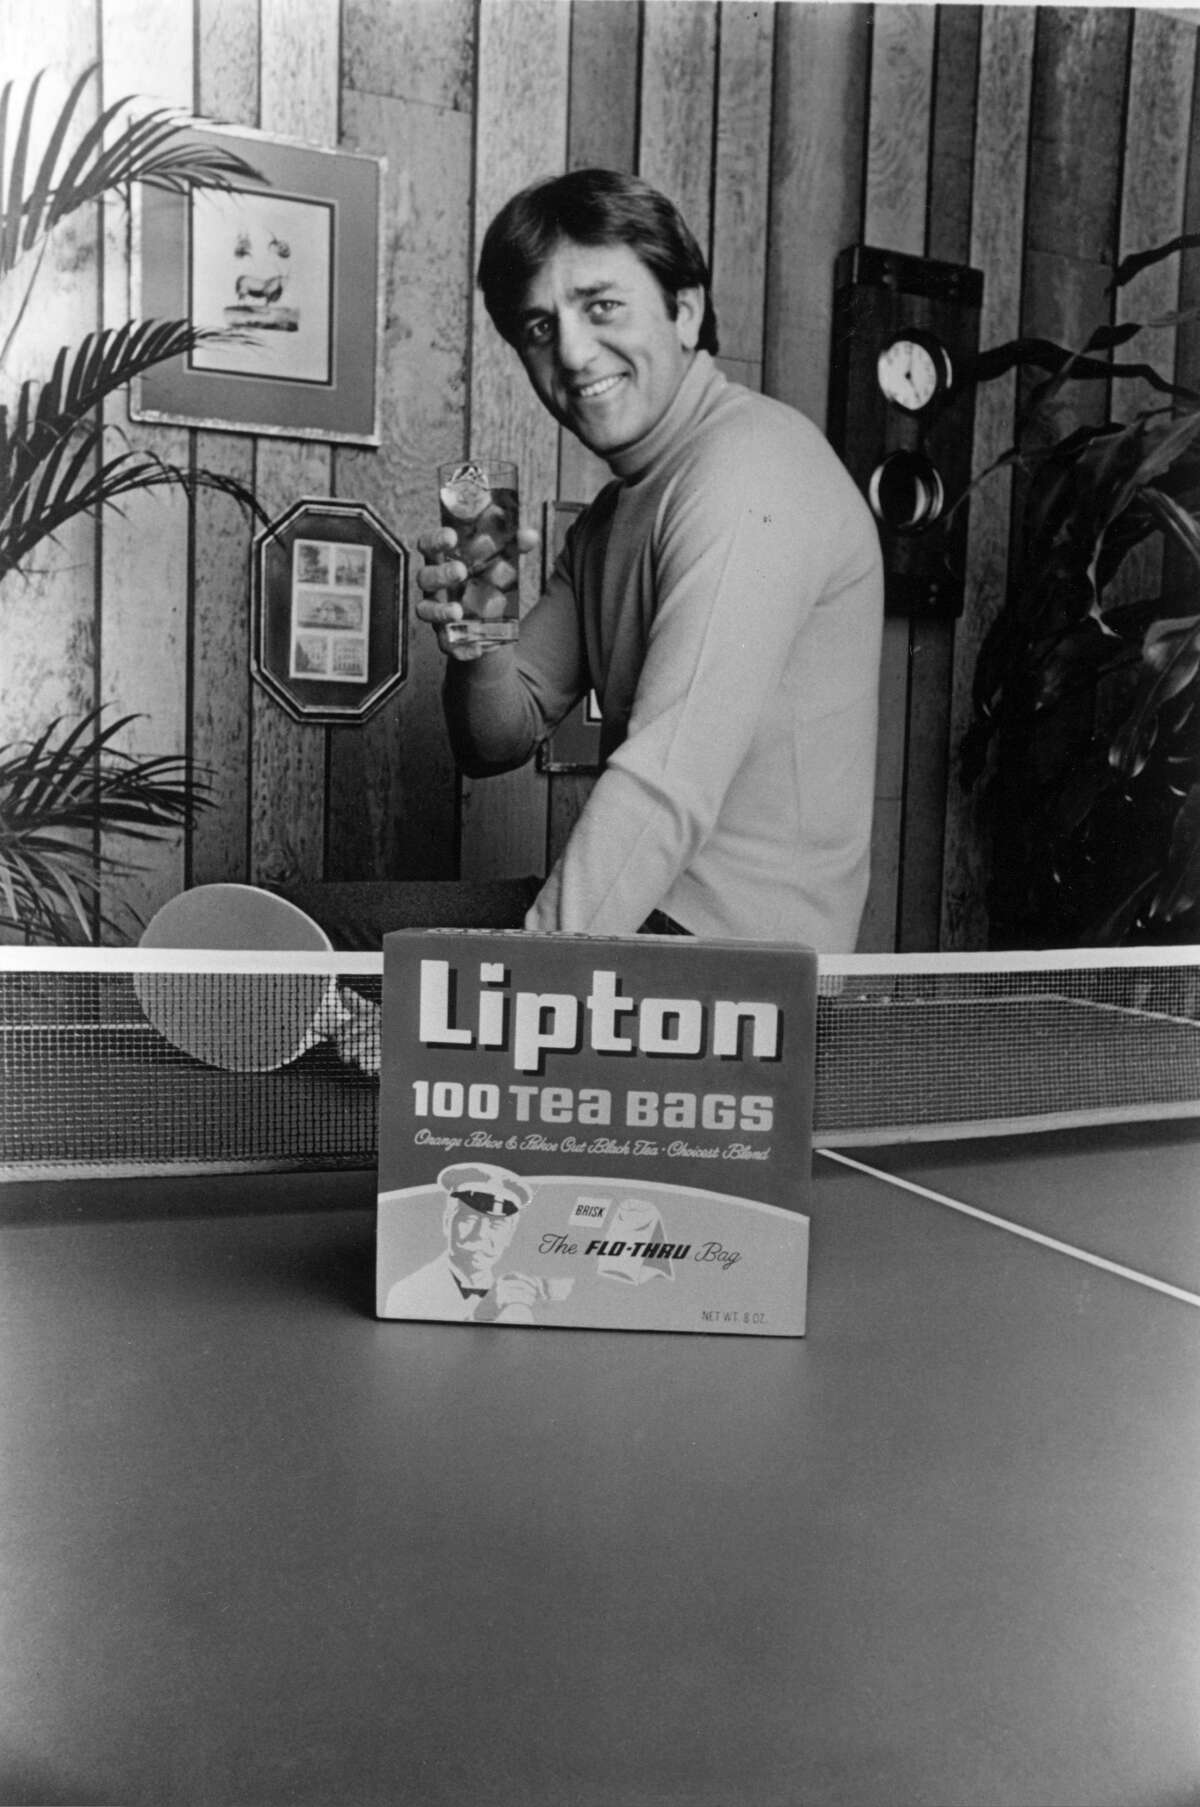 Don Meredith pitches for Lipton tea in an undated photo. Meredith also appeared in more than a dozen made-for-TV movies, specials or dramas. He once filled in for Johnny Carson on the